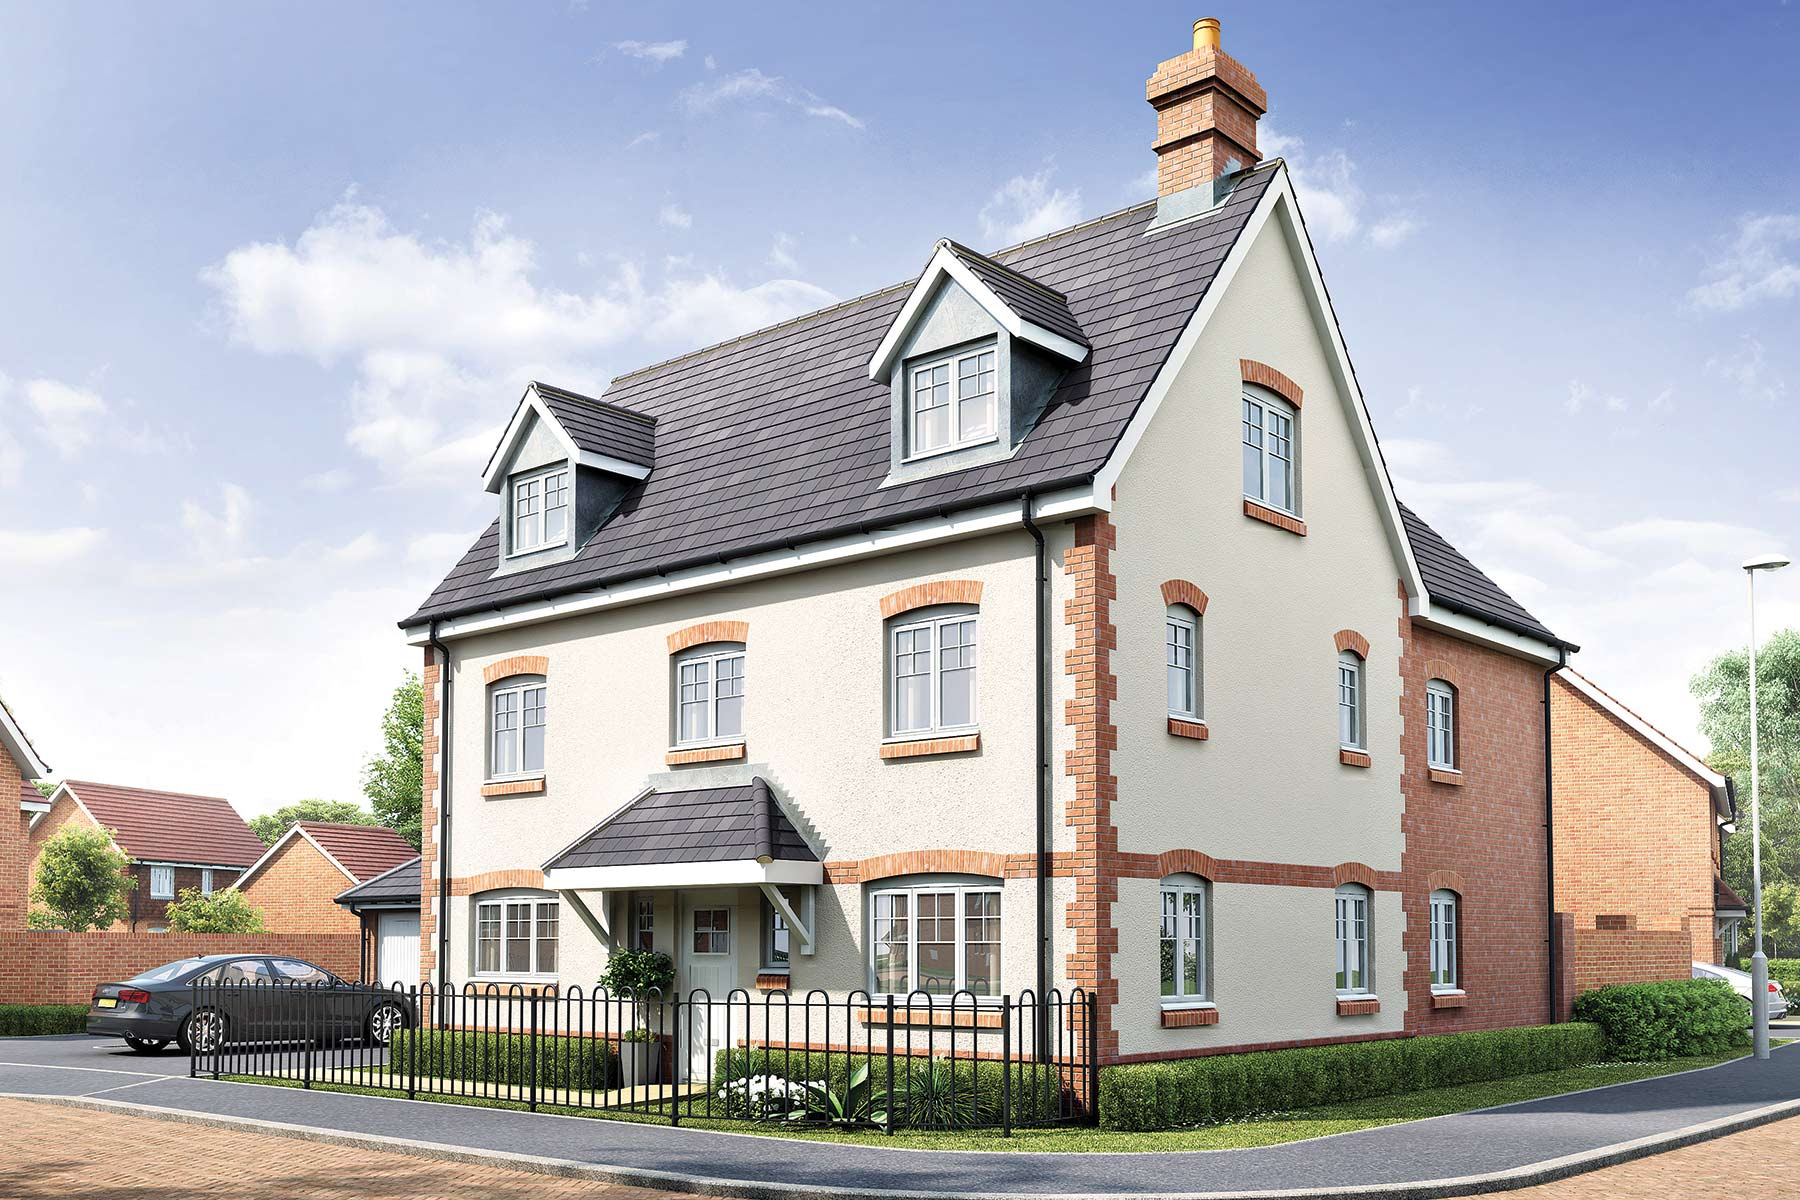 Artists impression of typical Buckingham home